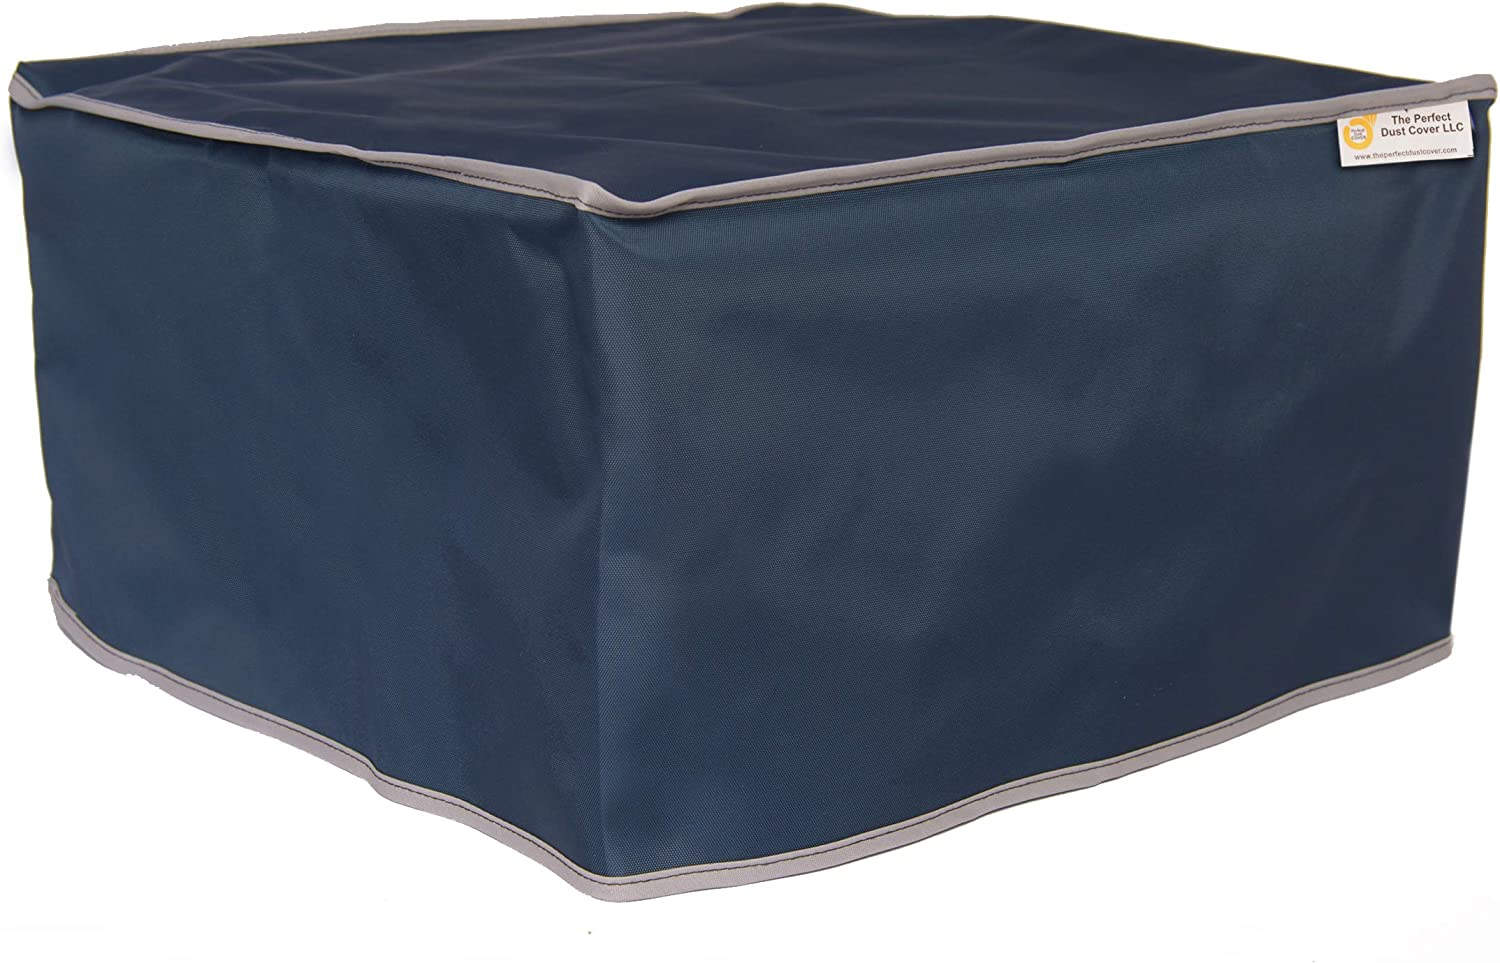 The Perfect Dust Cover, Navy Blue Nylon Cover for HP Laserjet Pro 200 MFP M276 Laser Printer, Anti Static and Waterproof Cover Dimensions 17.7''W x 18.7''D x 16.3''H by The Perfect Dust Cover LLC